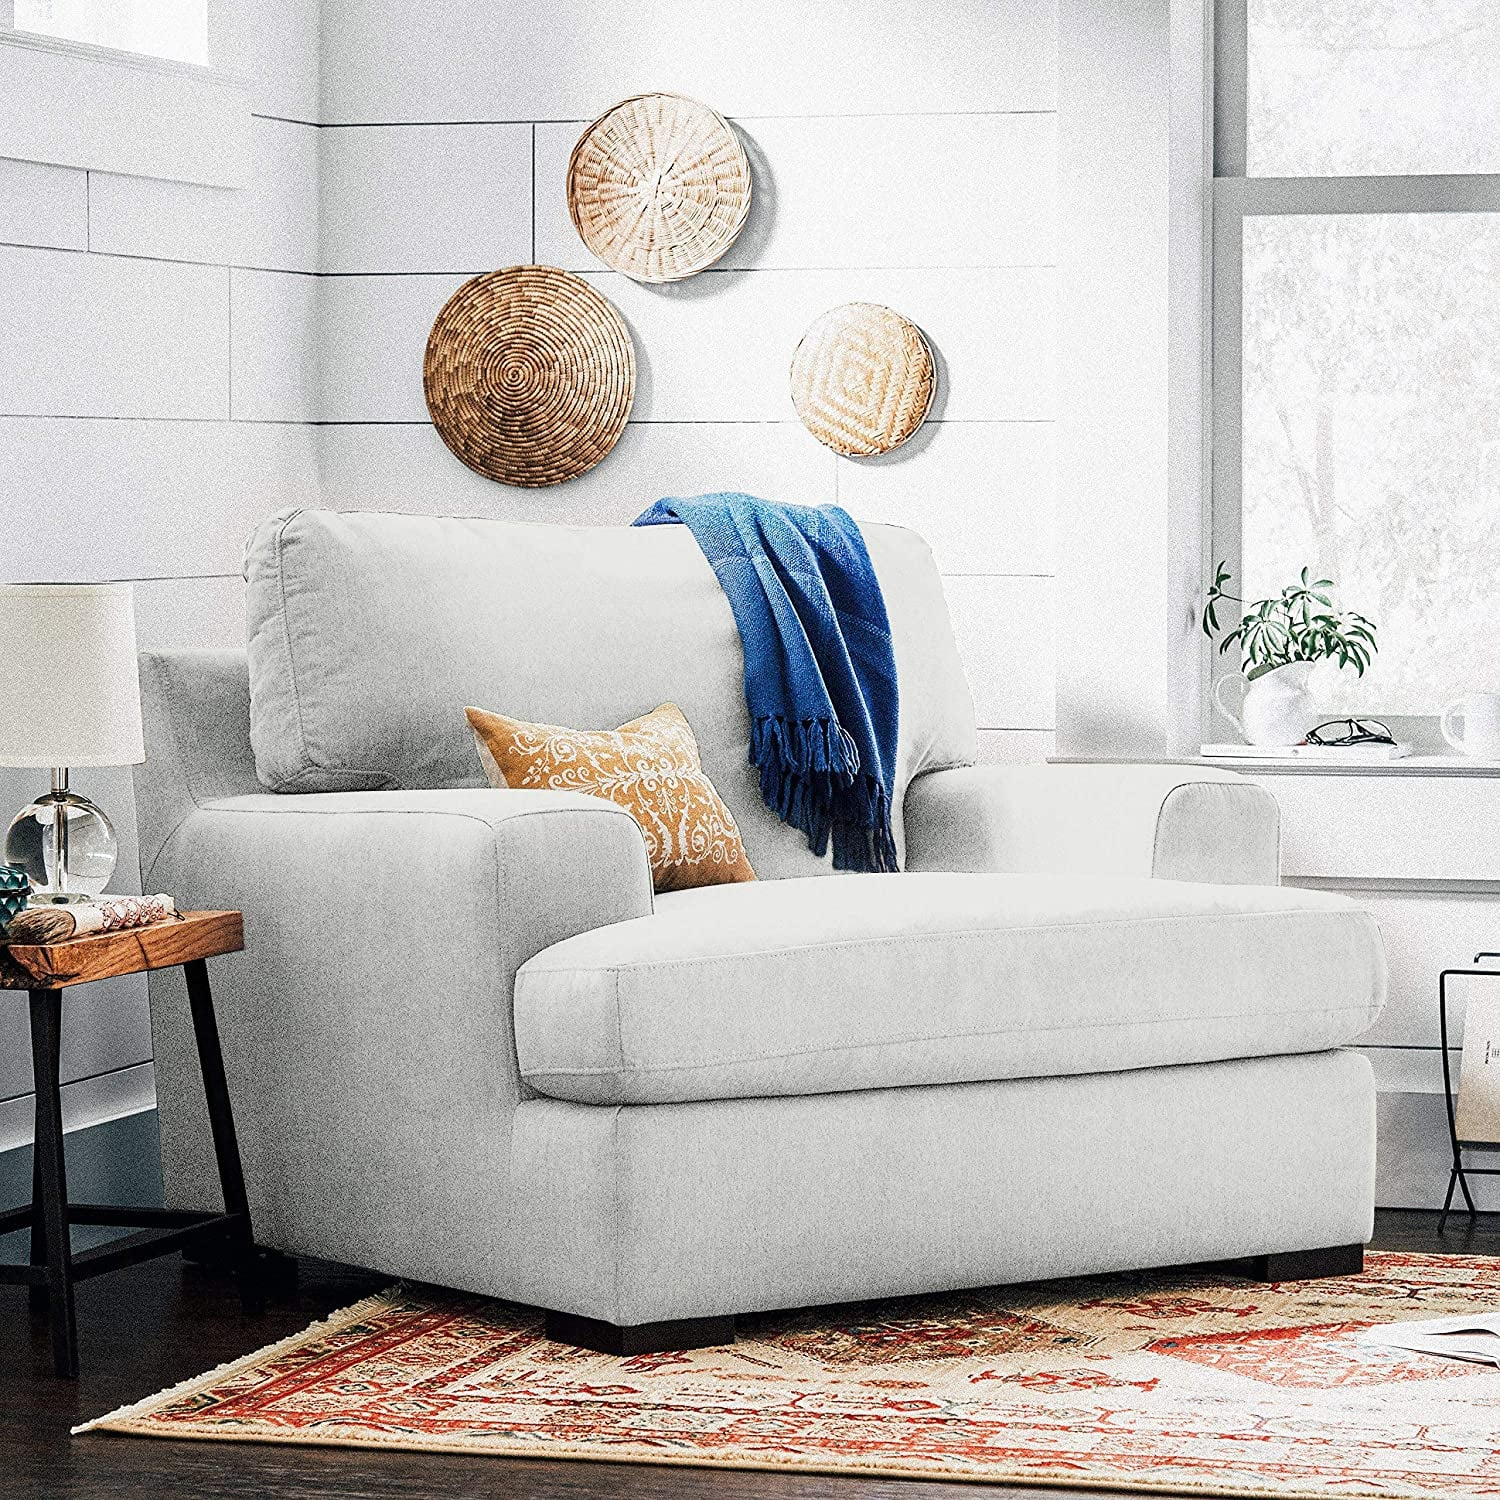 Best And Most Comfortable Lounge Chairs | POPSUGAR Home